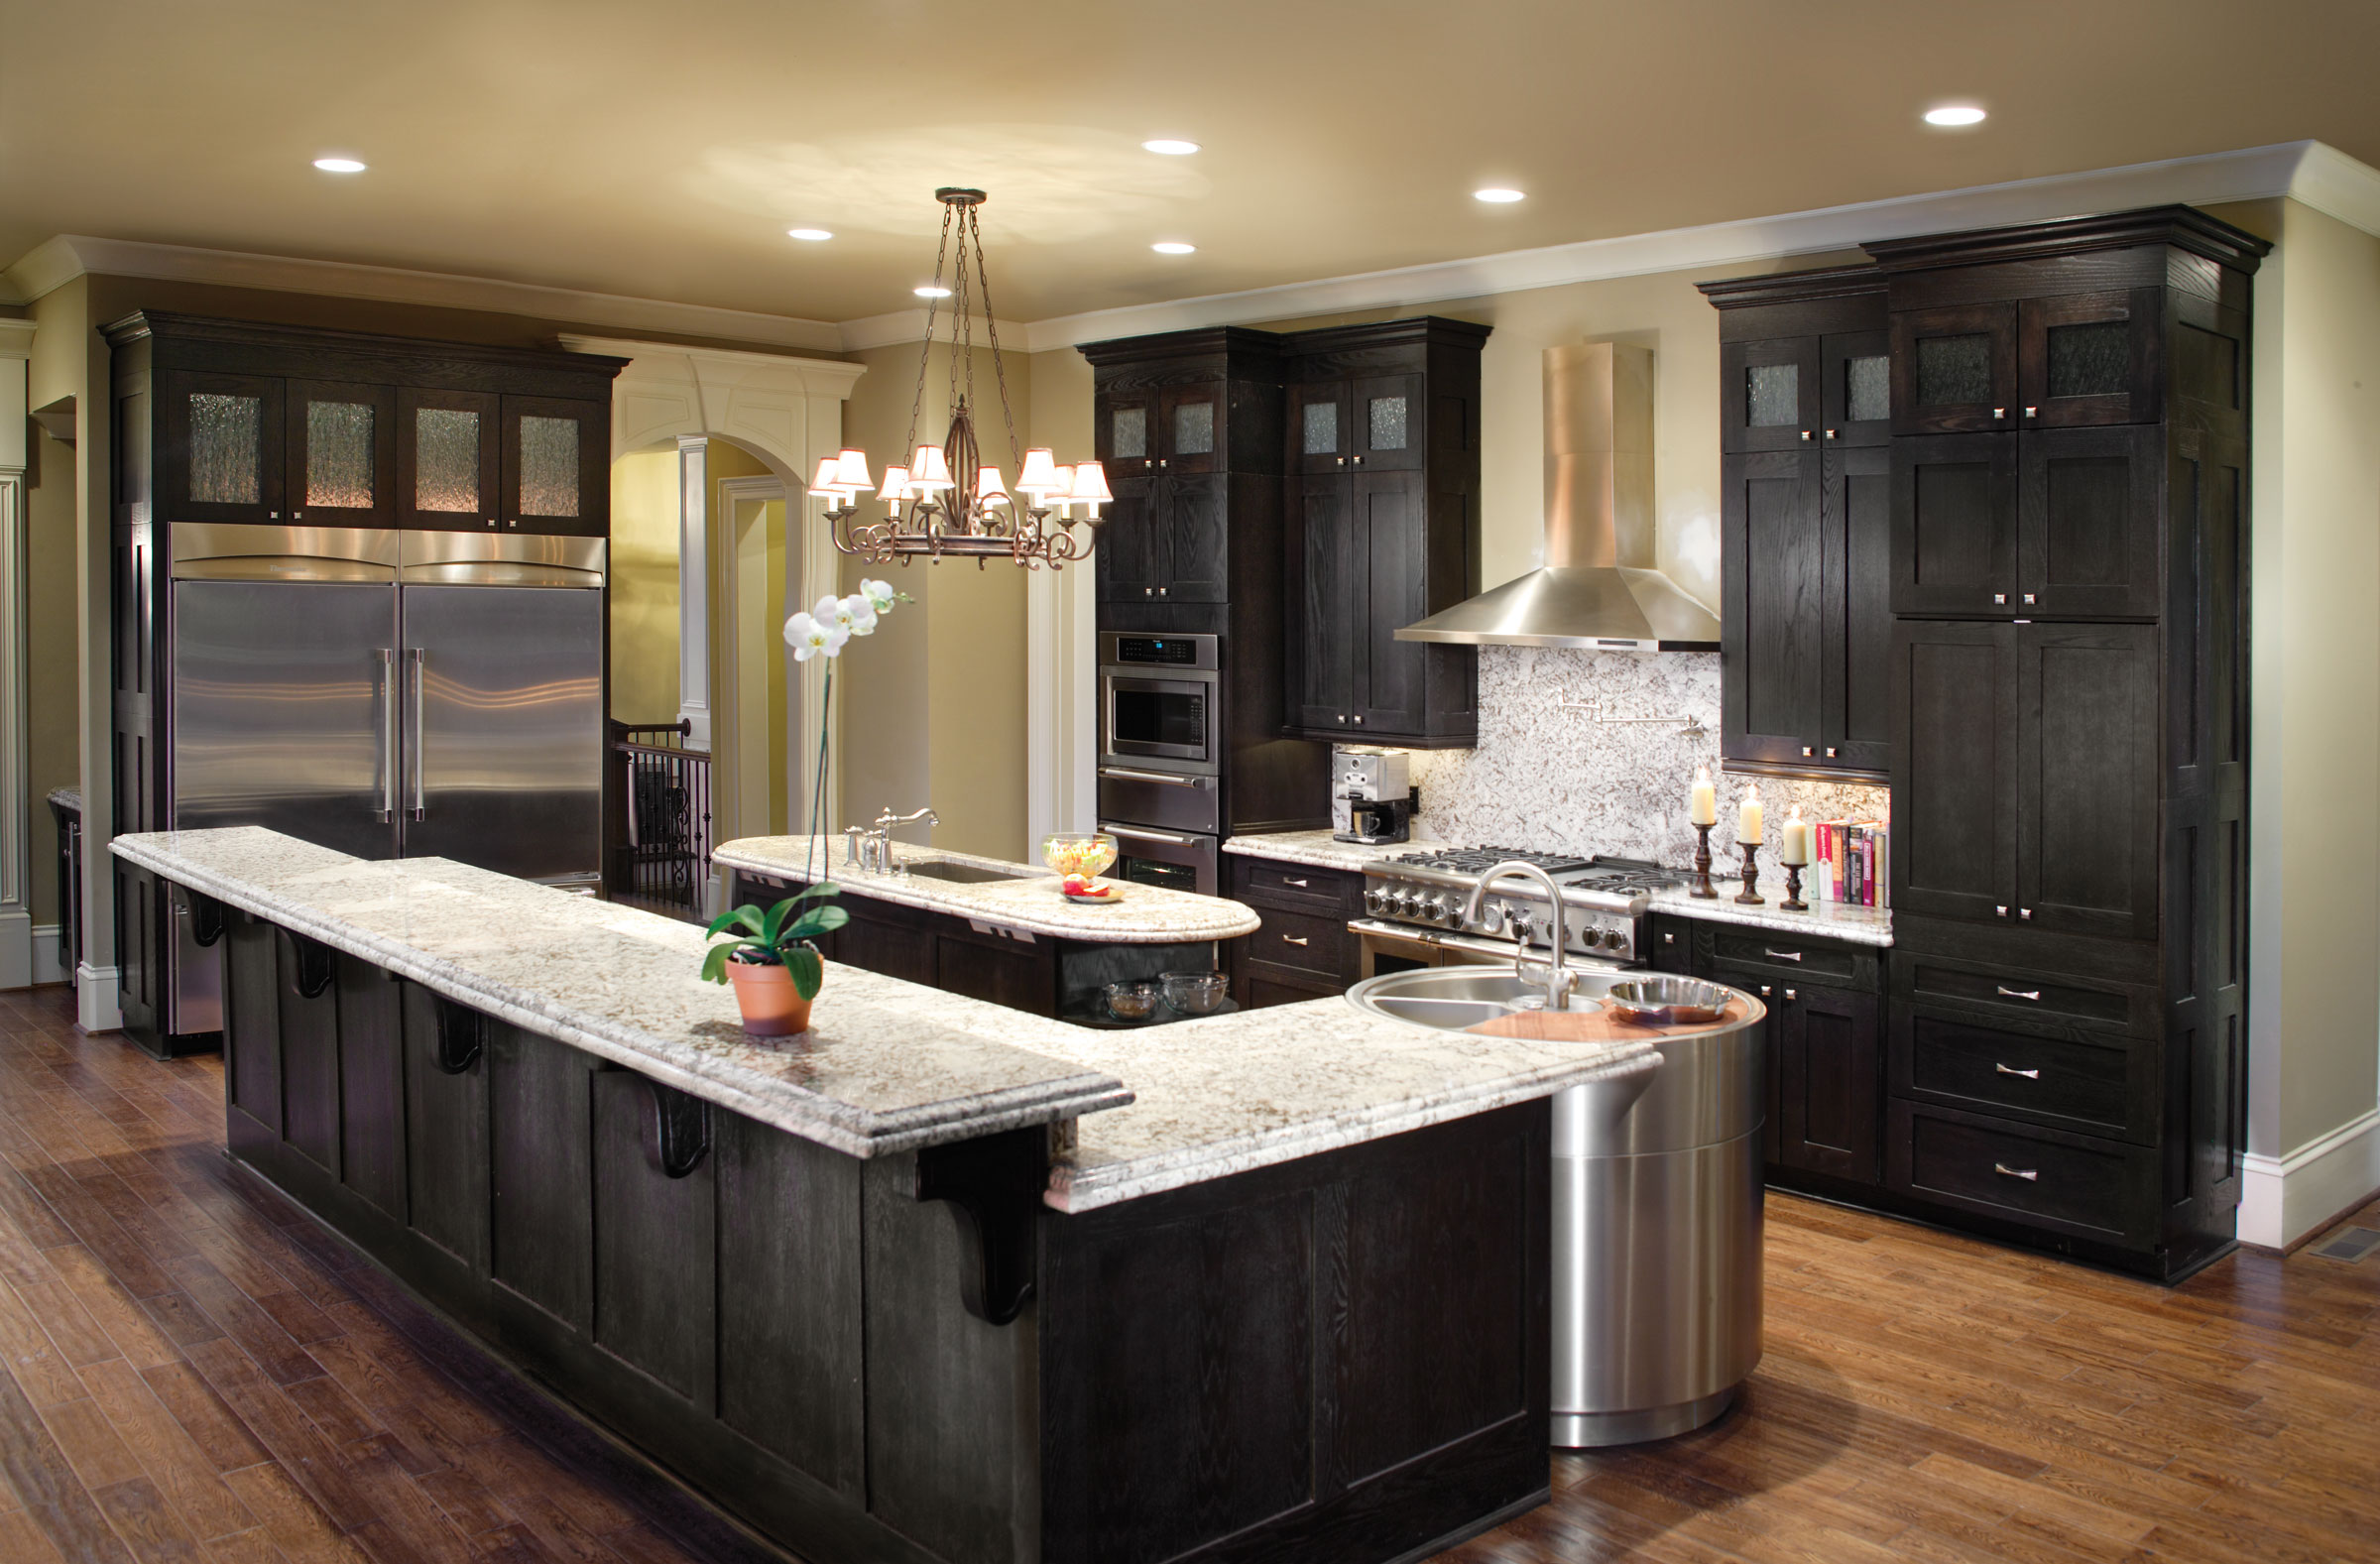 Custom bathroom kitchen cabinets phoenix cabinets by for Custom kitchen remodel